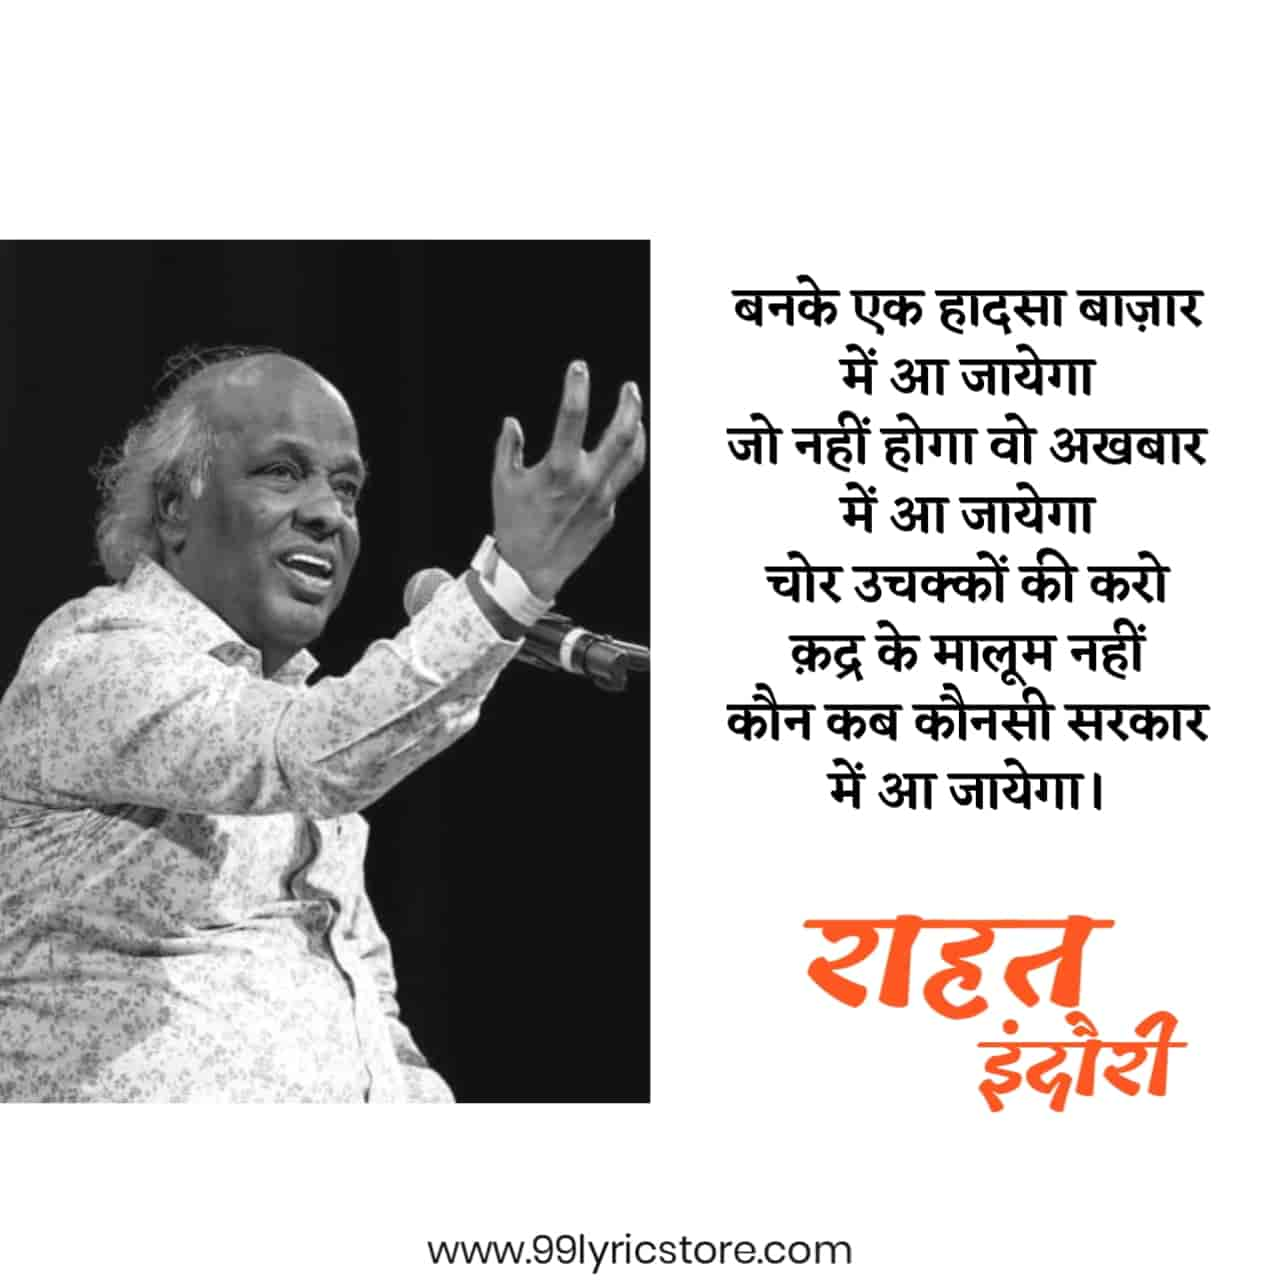 This beautiful shayari 'Kaun Kab Kaunsi Sarkar Mein Aa Jayega' which is written and performed by famous legend Shayar Dr. Rahat Indori.